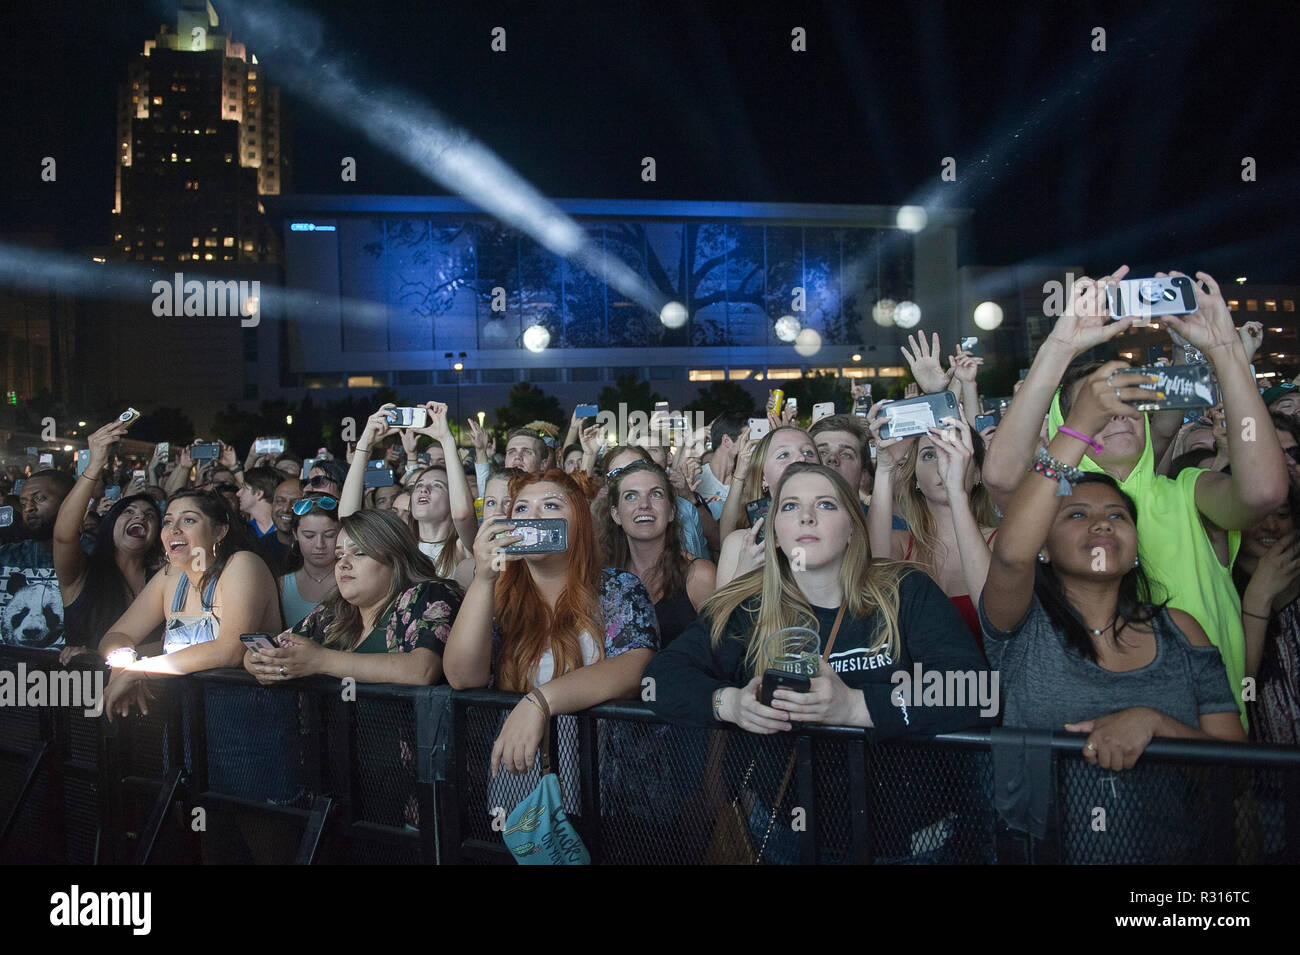 May 9, 2018 - Raleigh, North Carolina; USA - General Atmosphere as Musicians HARRISON MILLS and CLAYTON KNIGHT of the electronic band ODESZA performs live as their 2018 tour makes a stop at the Red Hat Amphitheater located in Raleigh. Copyright 2018 Jason Moore. Credit: Jason Moore/ZUMA Wire/Alamy Live News - Stock Image